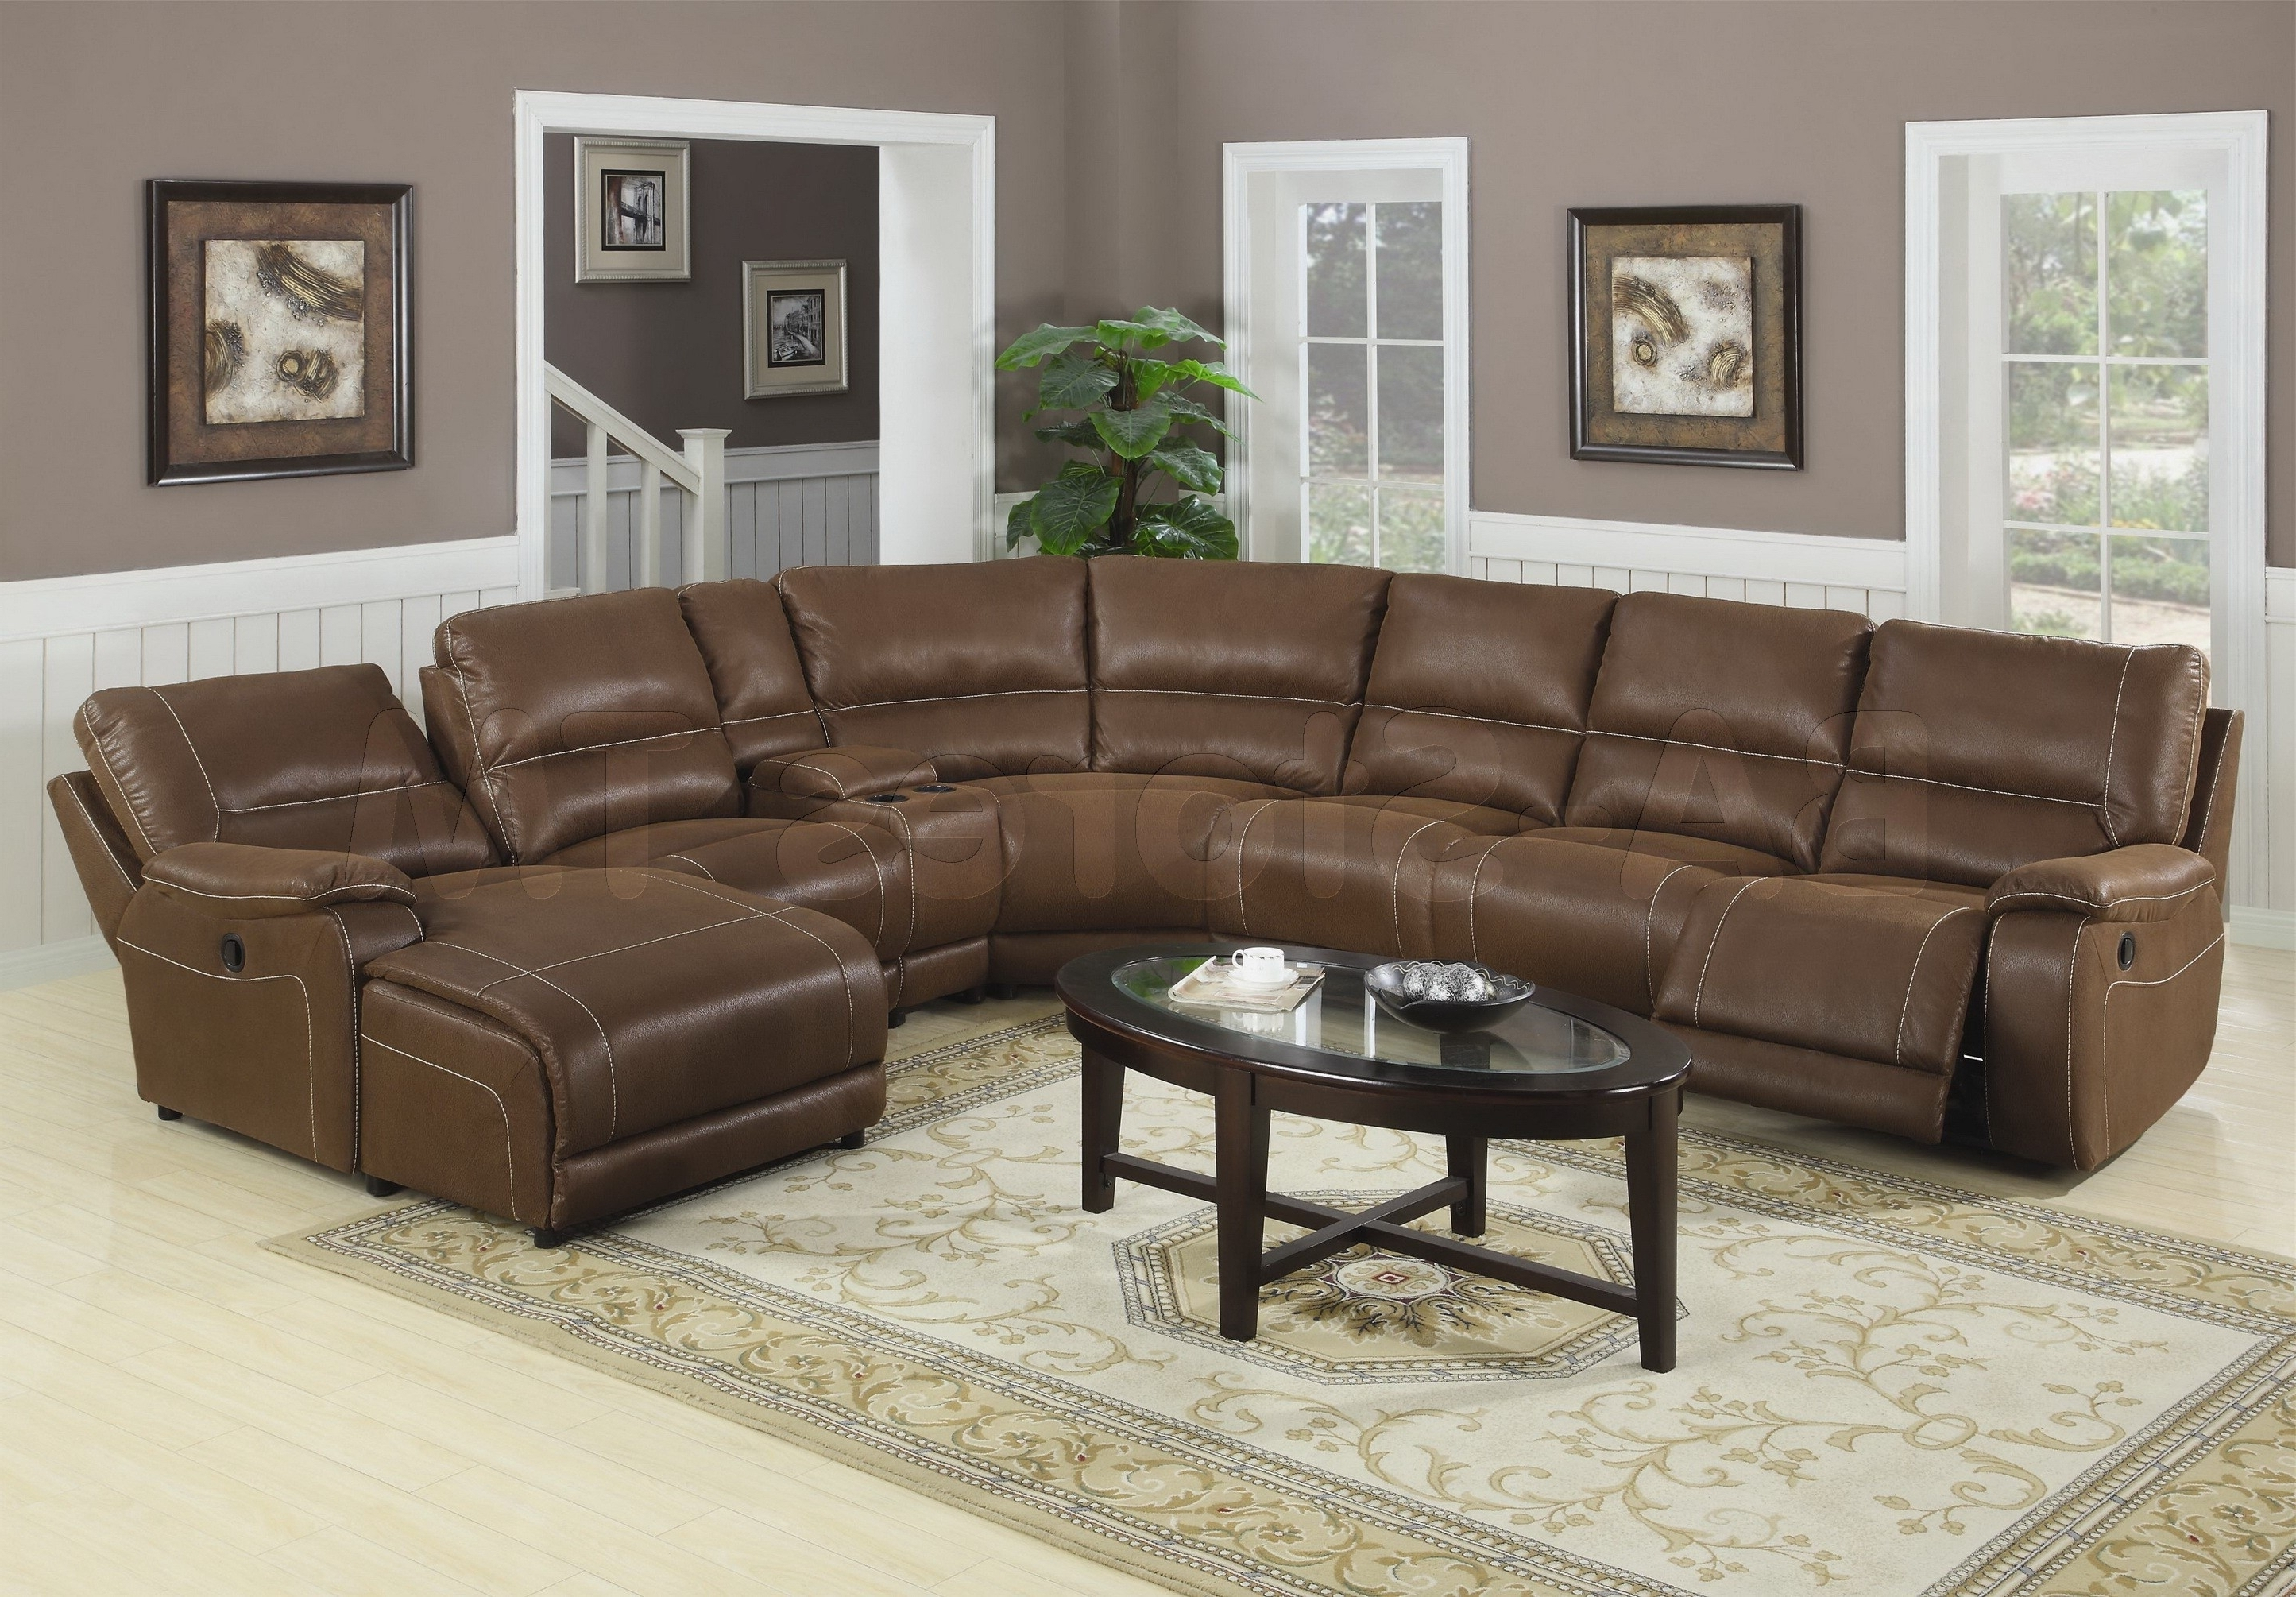 Unique Sectional Sofas Okc 21 With Additional Jonathan Louis Throughout Best And Newest Okc Sectional Sofas (View 20 of 20)